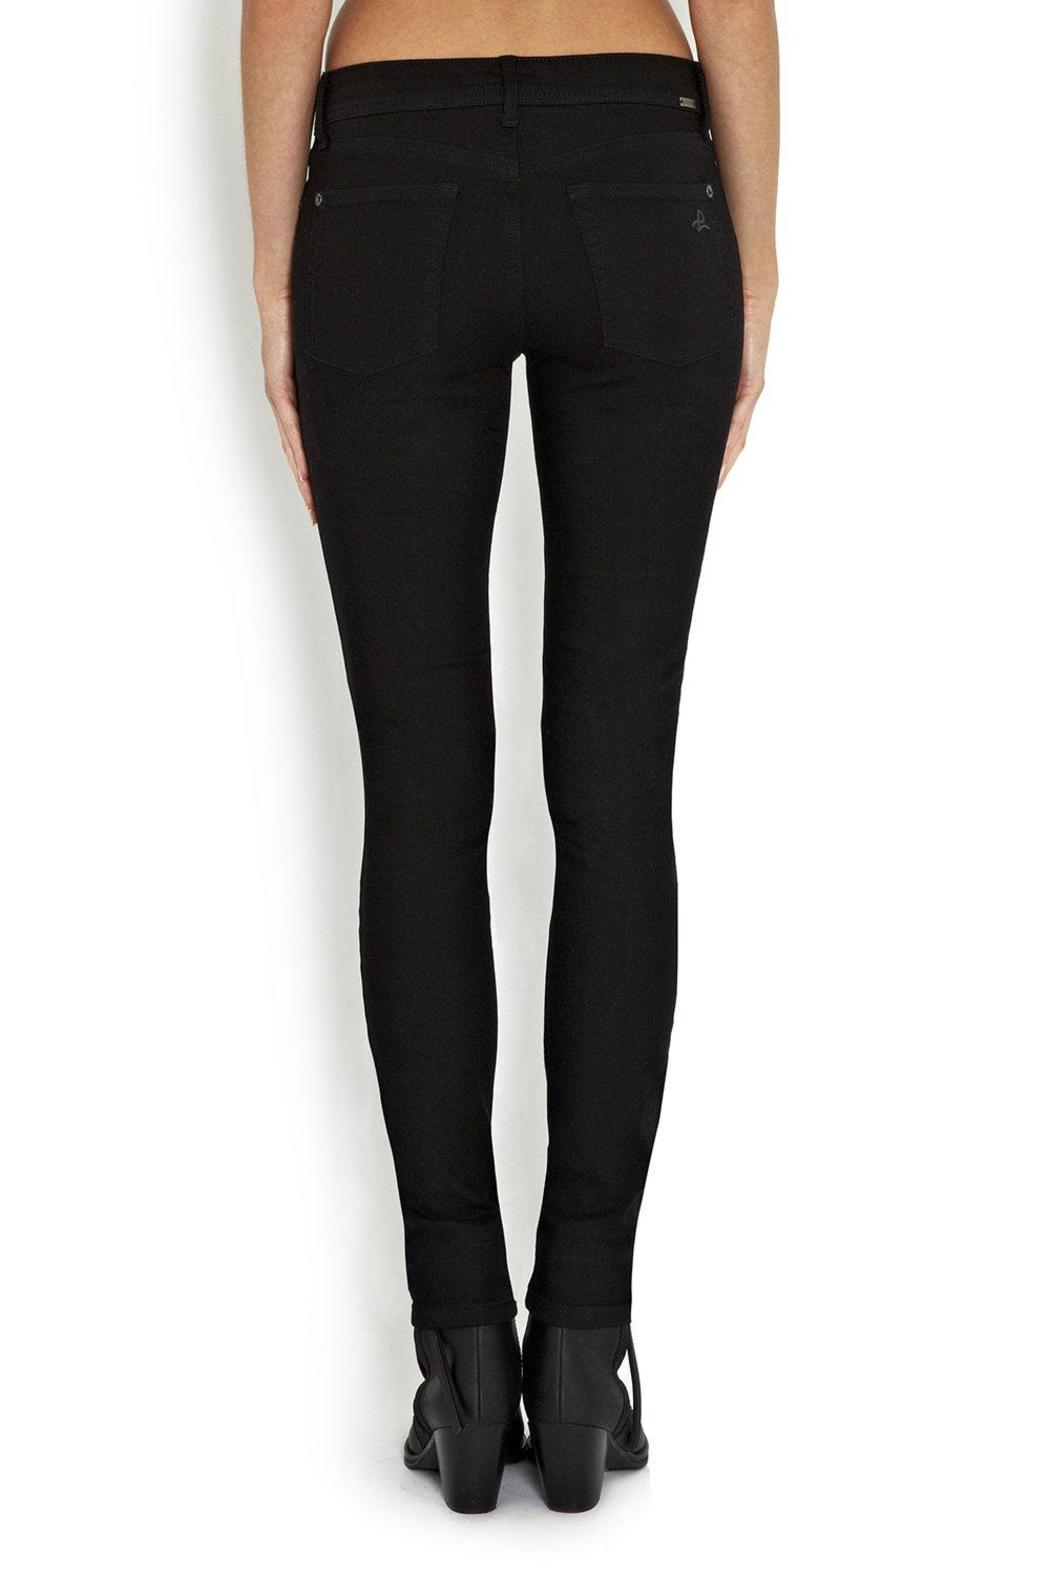 DL 1961 Black Jeans - Side Cropped Image